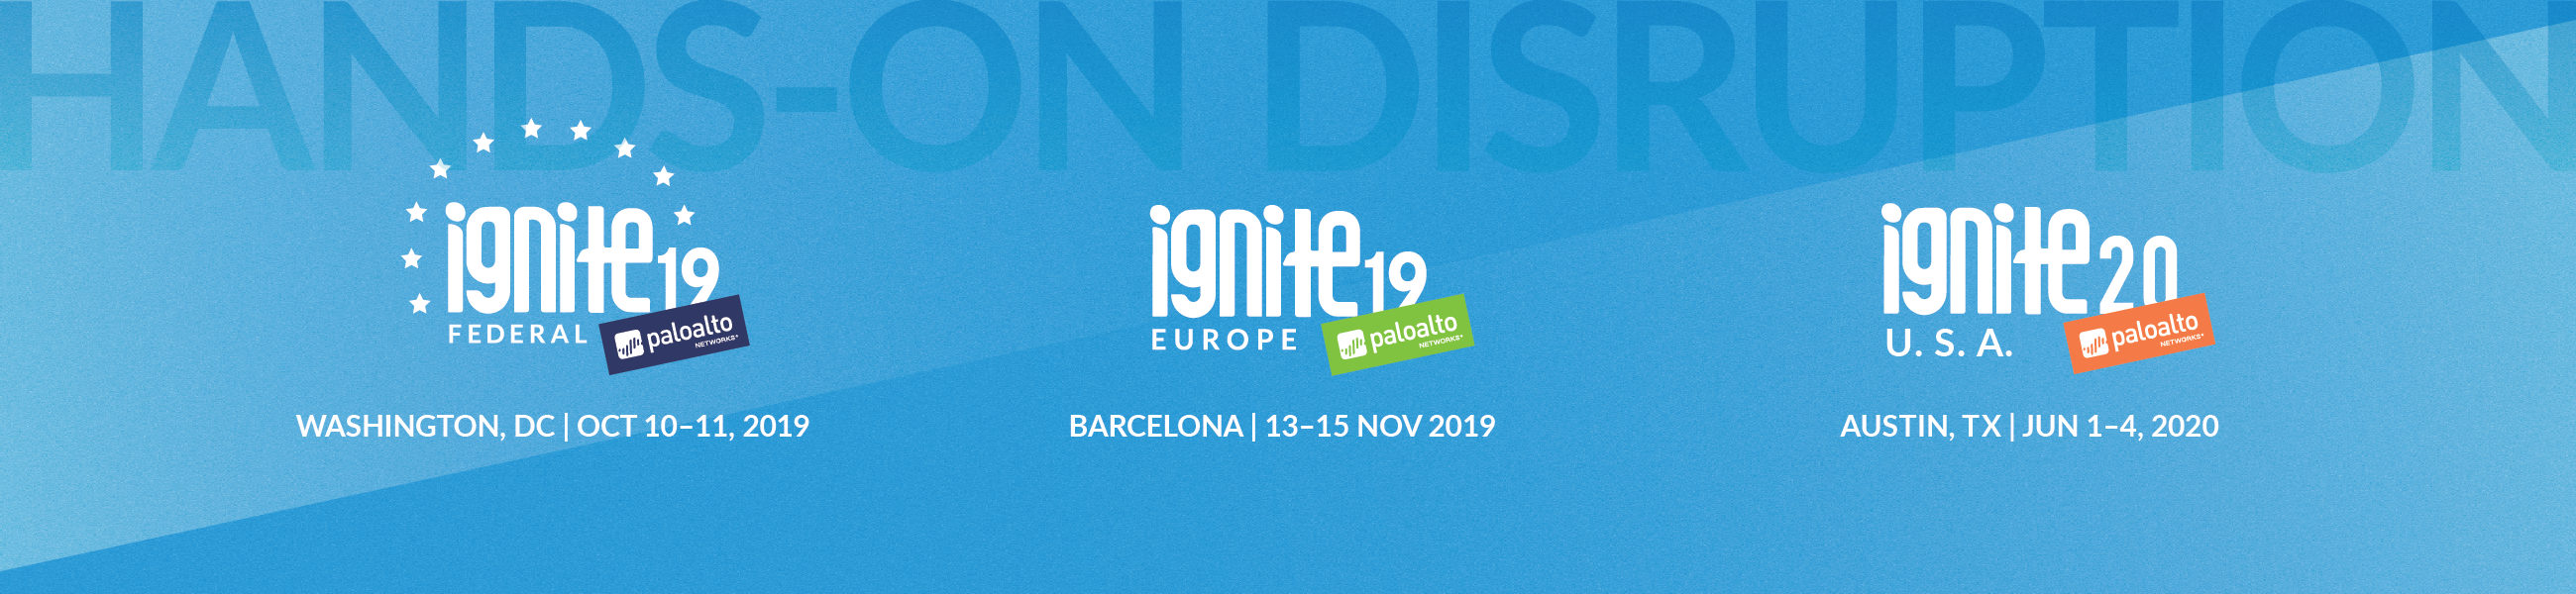 Ignite '19 Cybersecurity Conference | Palo Alto Networks